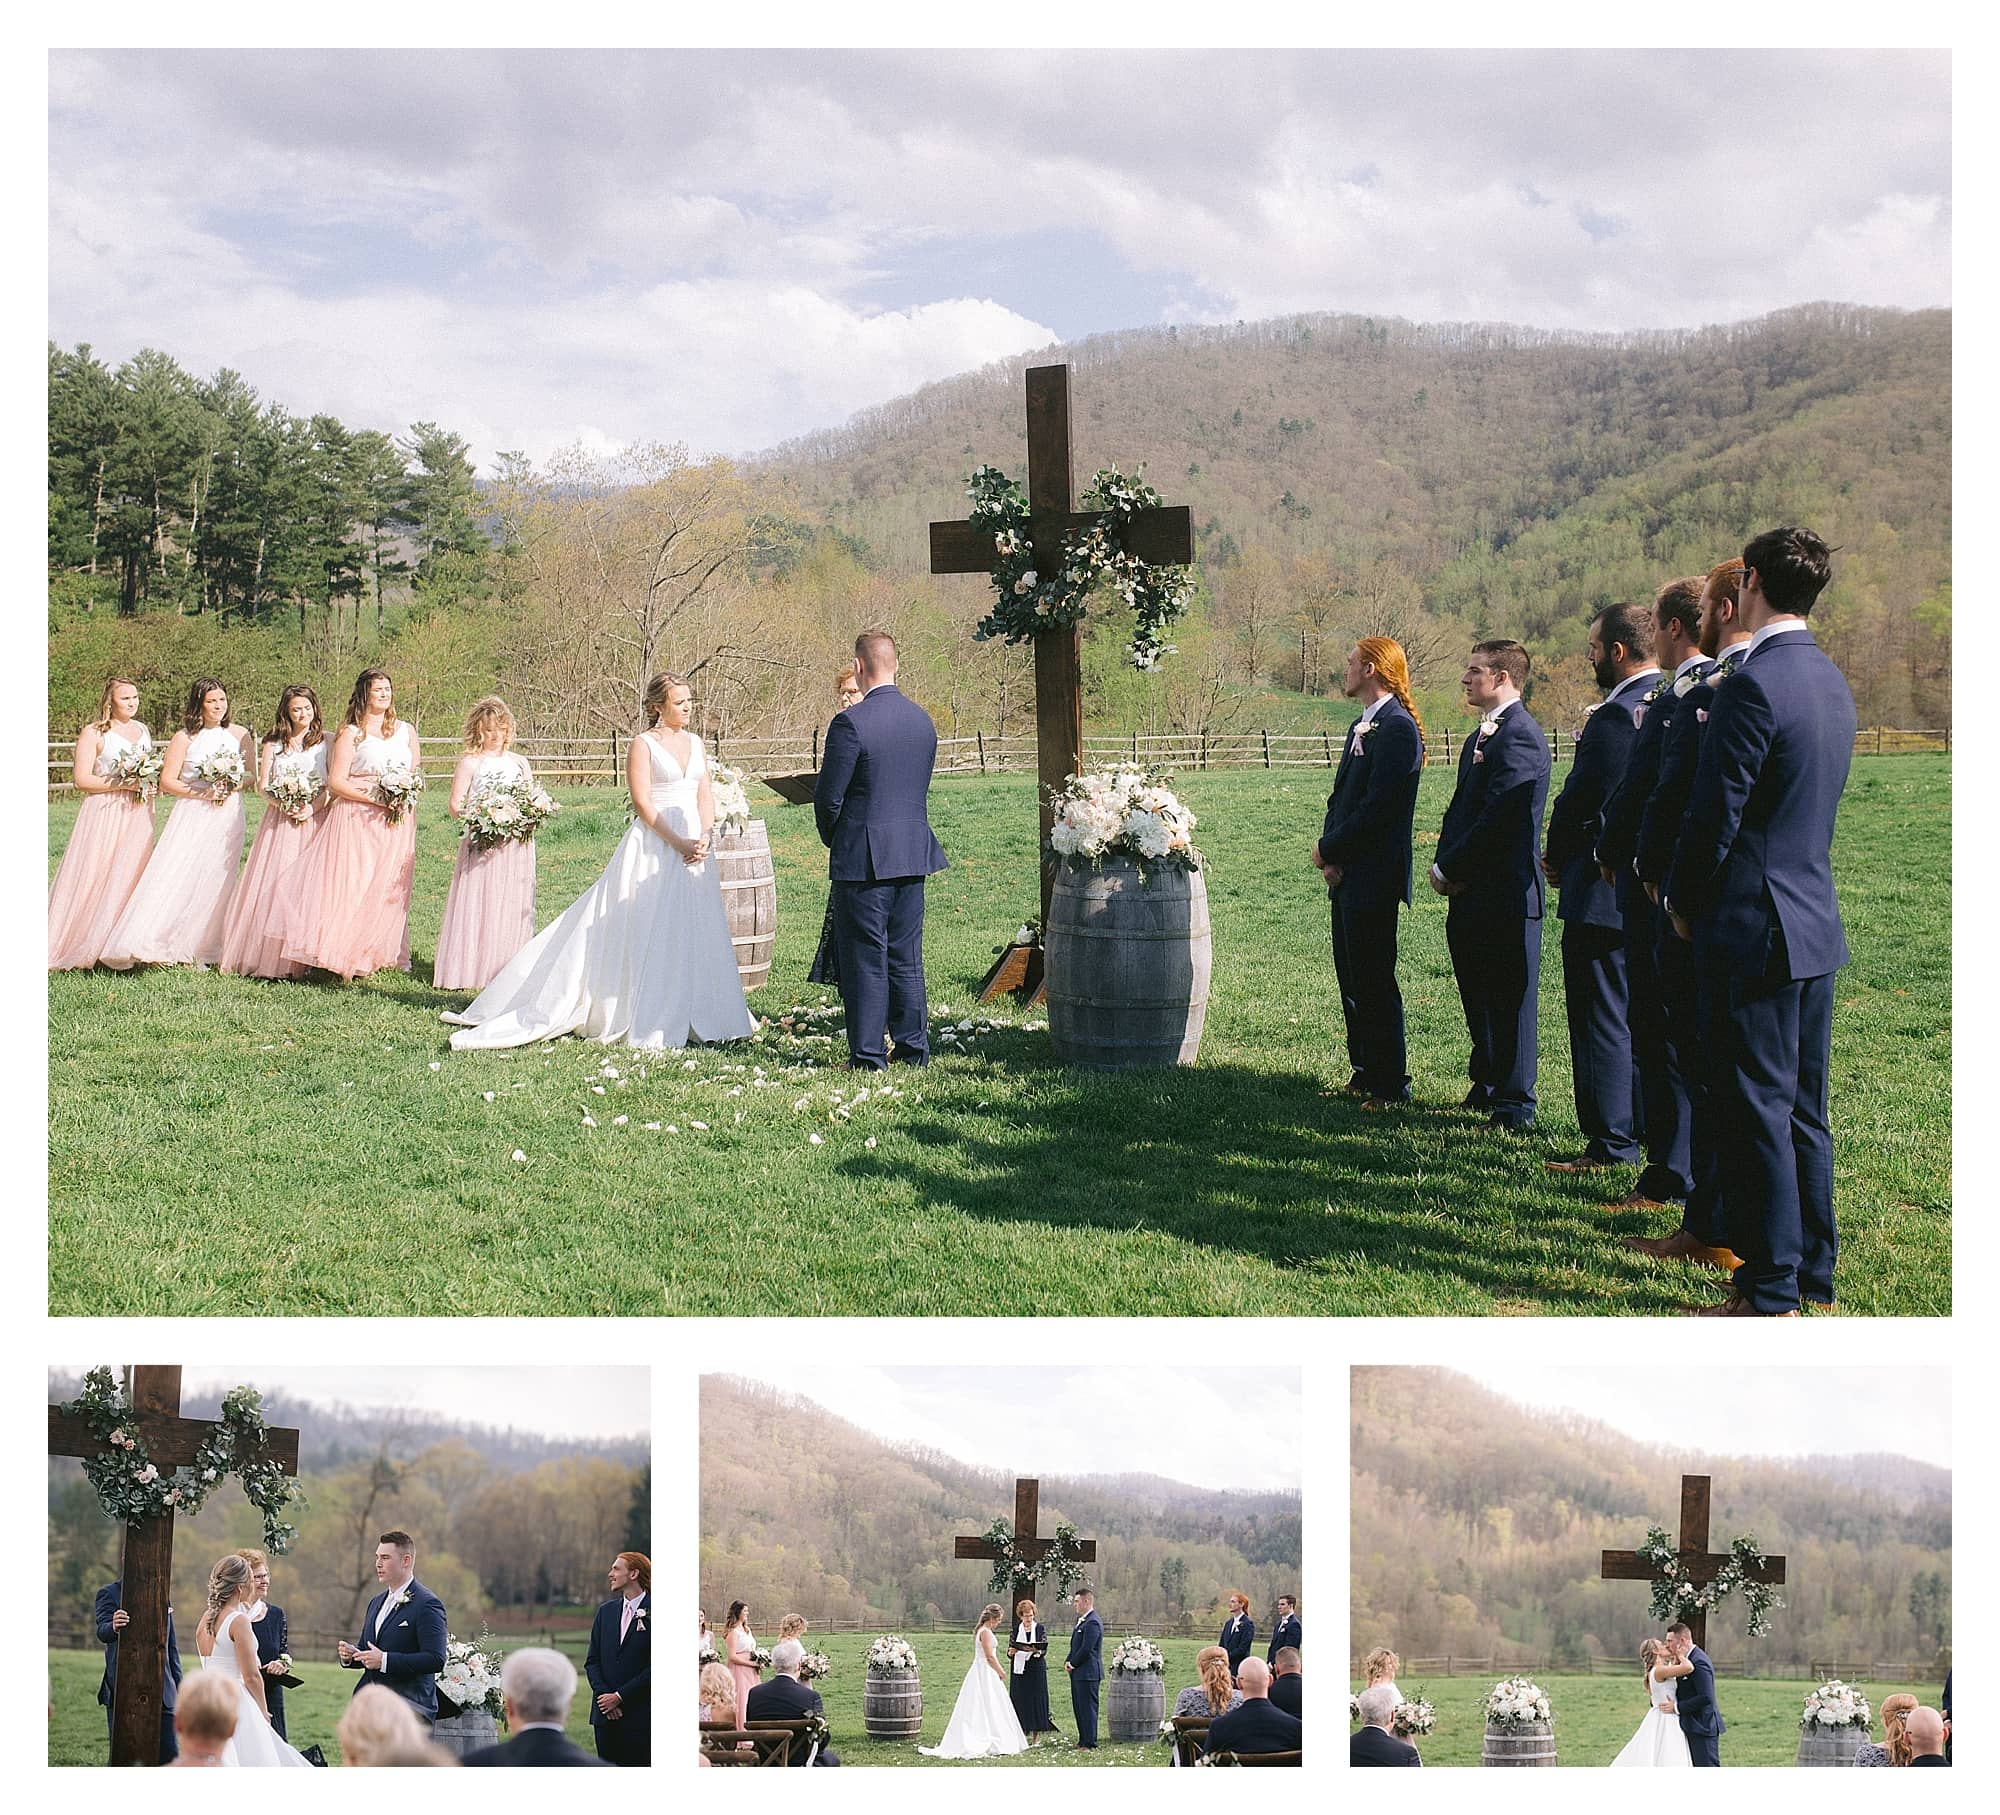 Wedding ceremony outdoors in grassy field among mountains - bride and groom first kiss